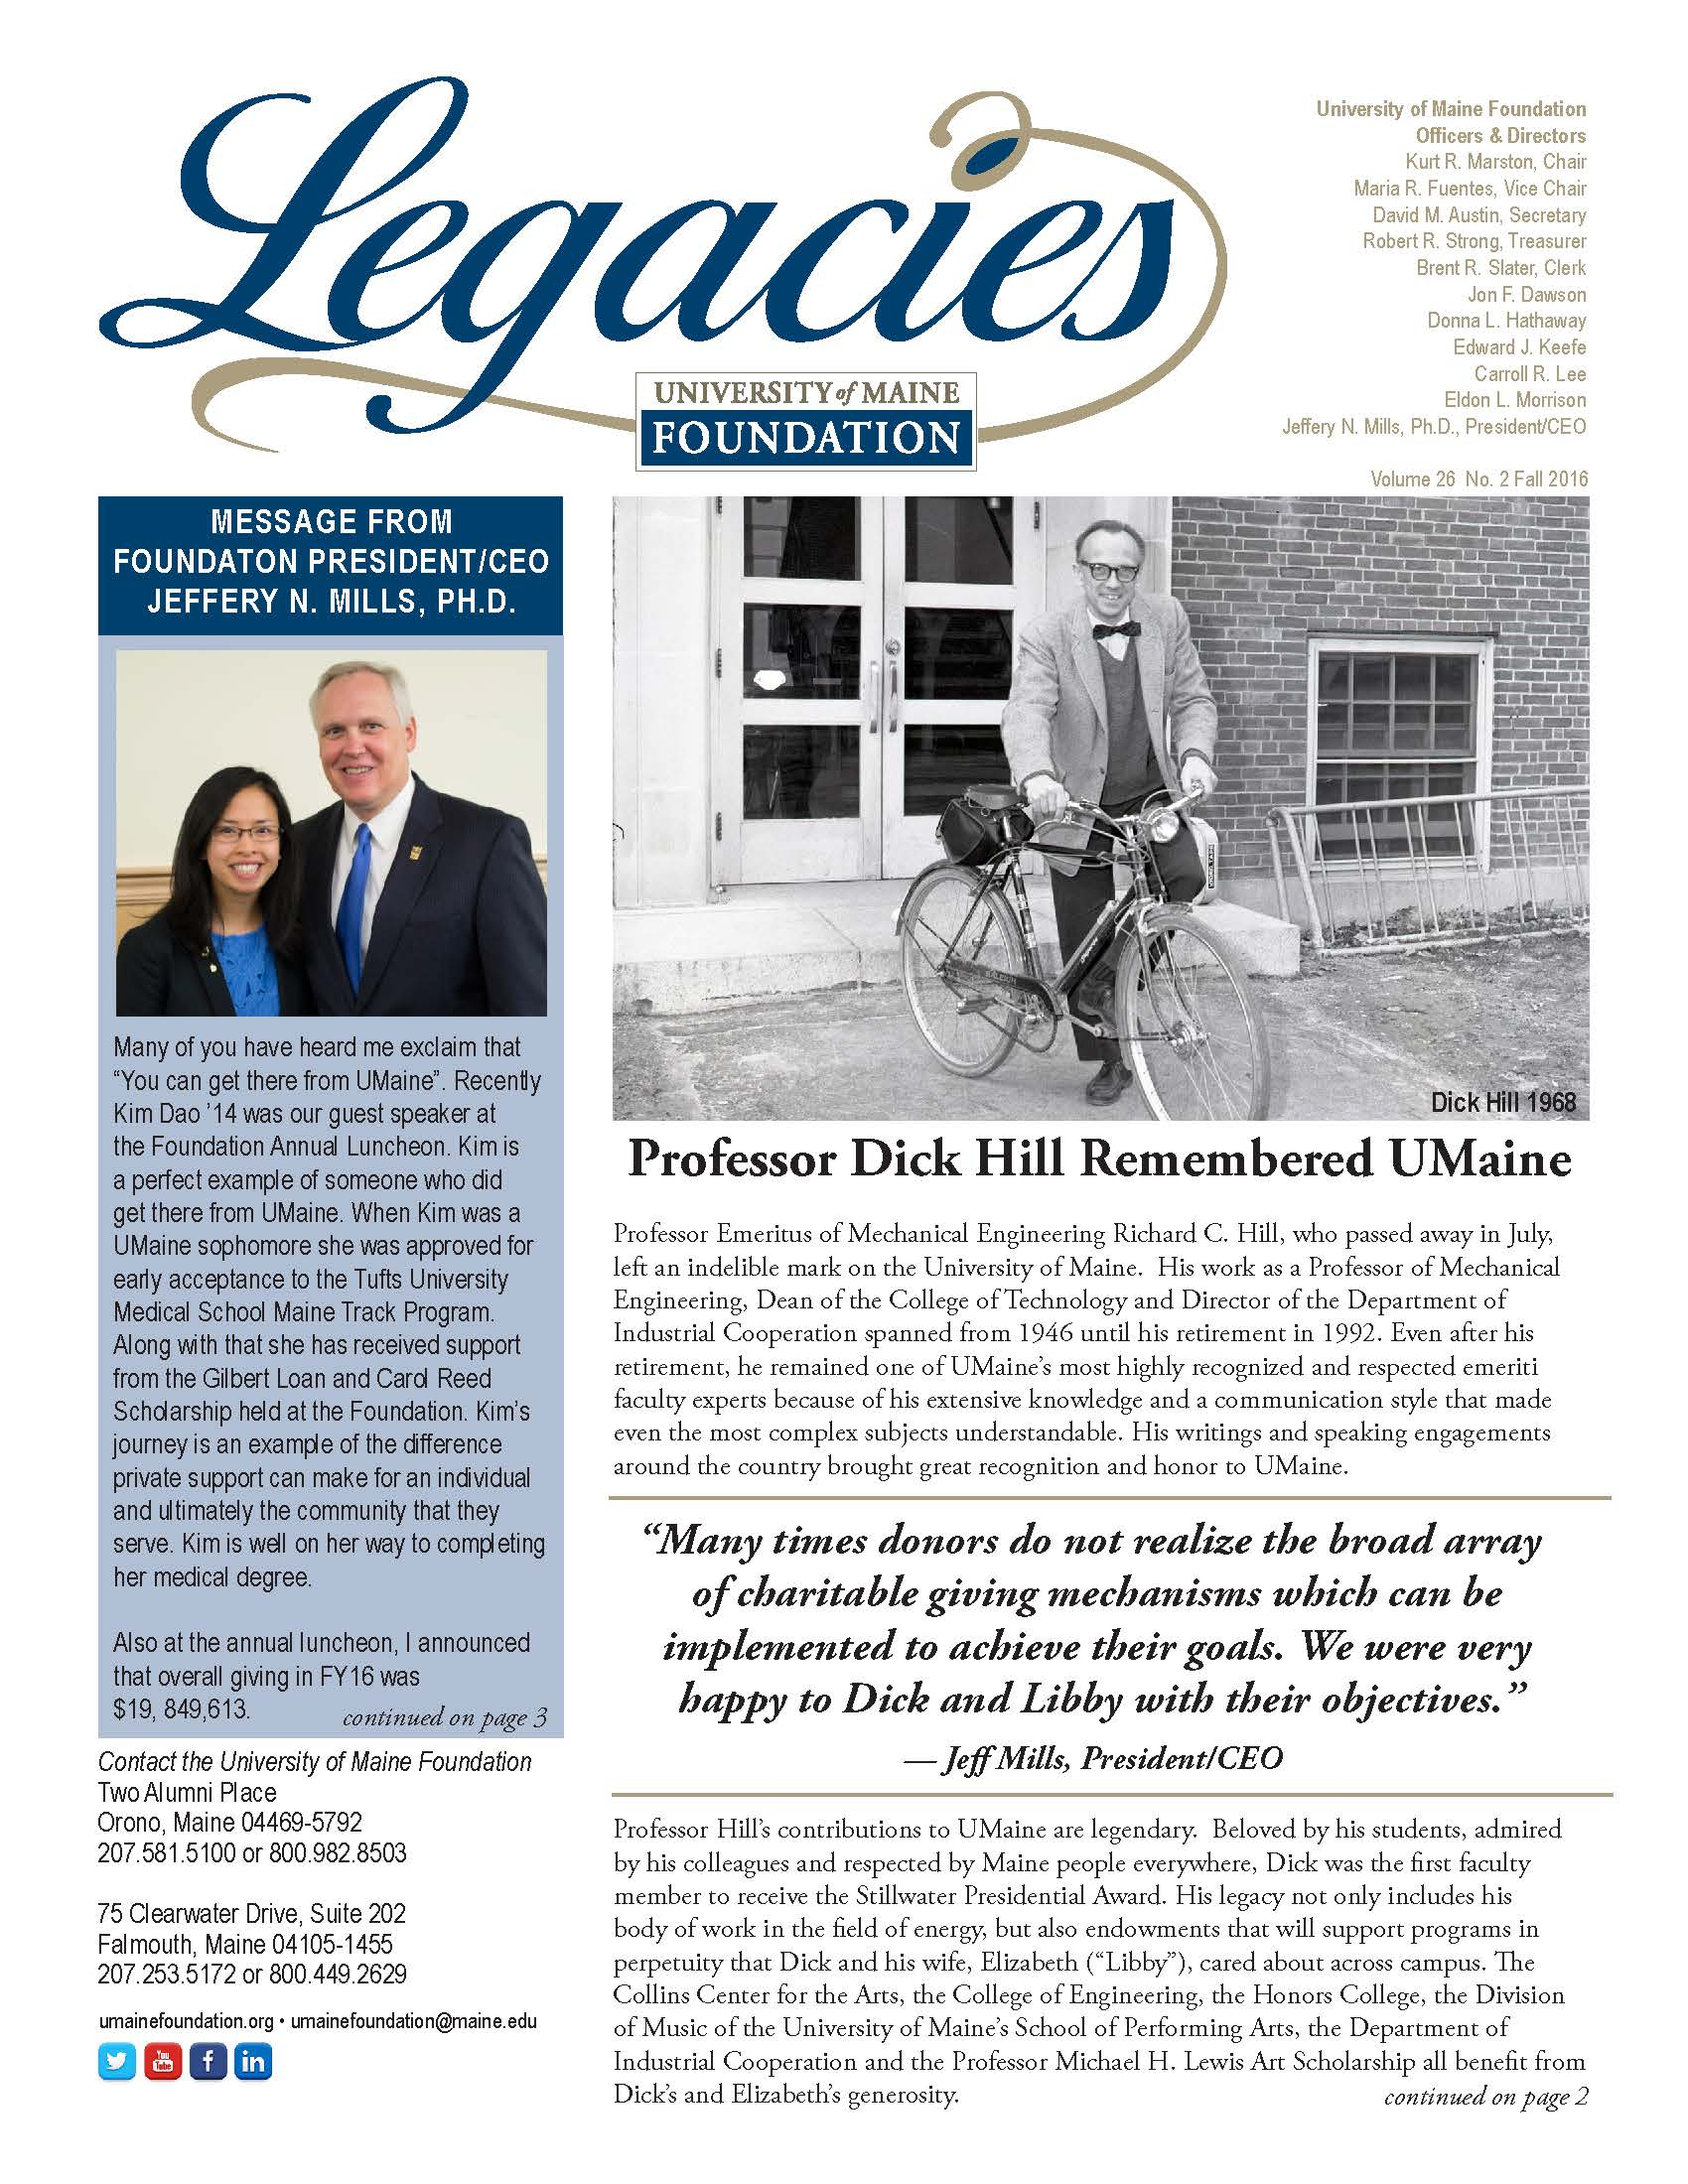 Link to Legacies Newsletter F2016